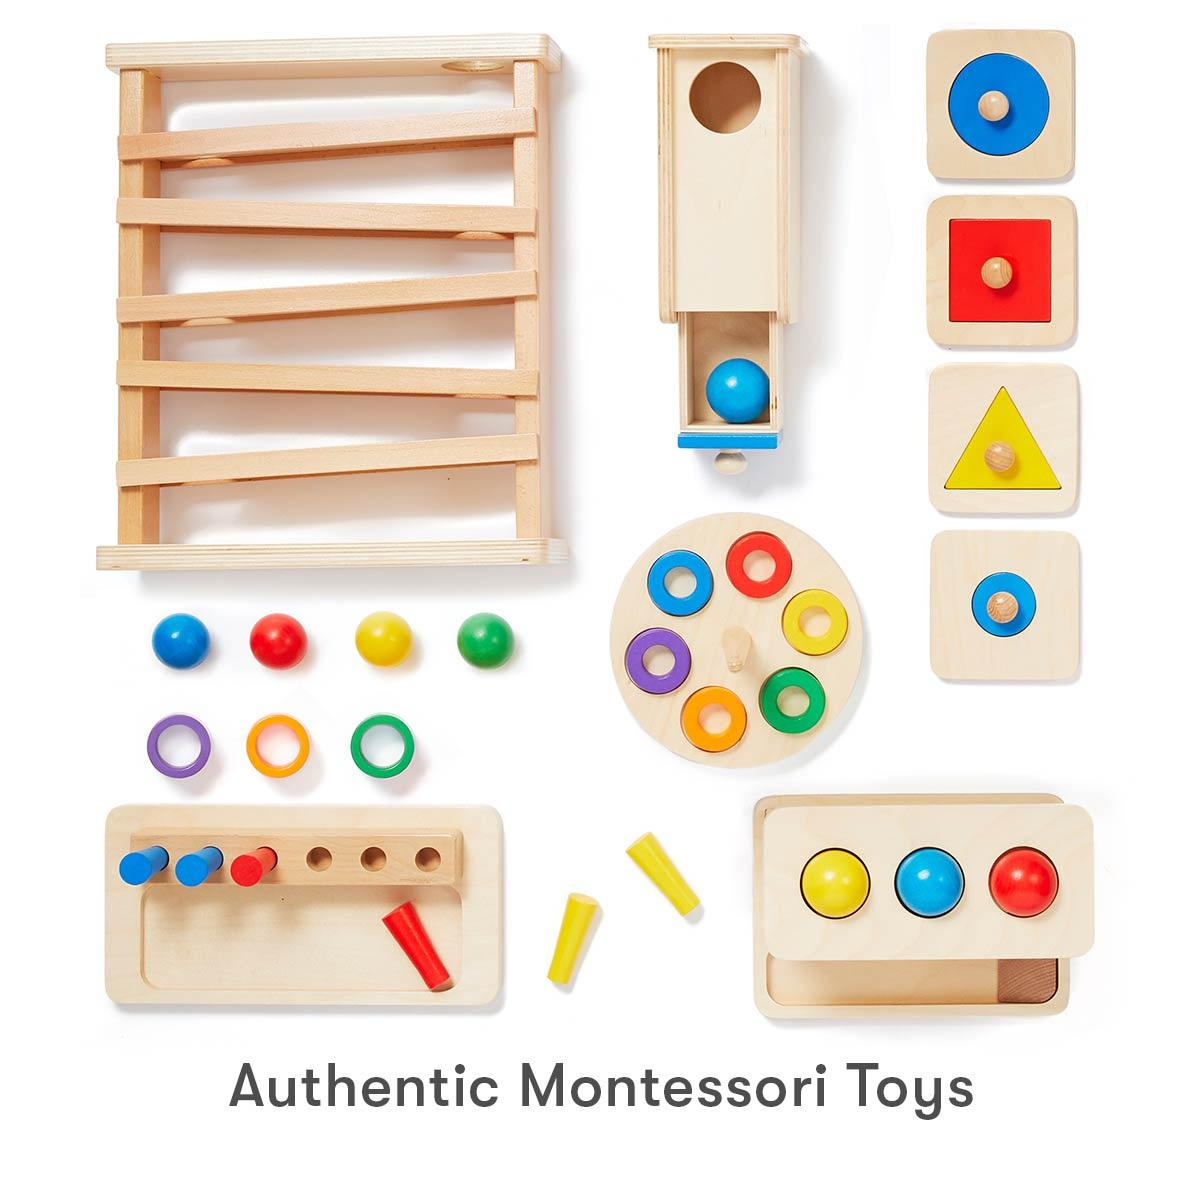 The Montessori materials in Level 4 encourages your baby to experiment with cause and effect to boost their memory and problem-solving skills.